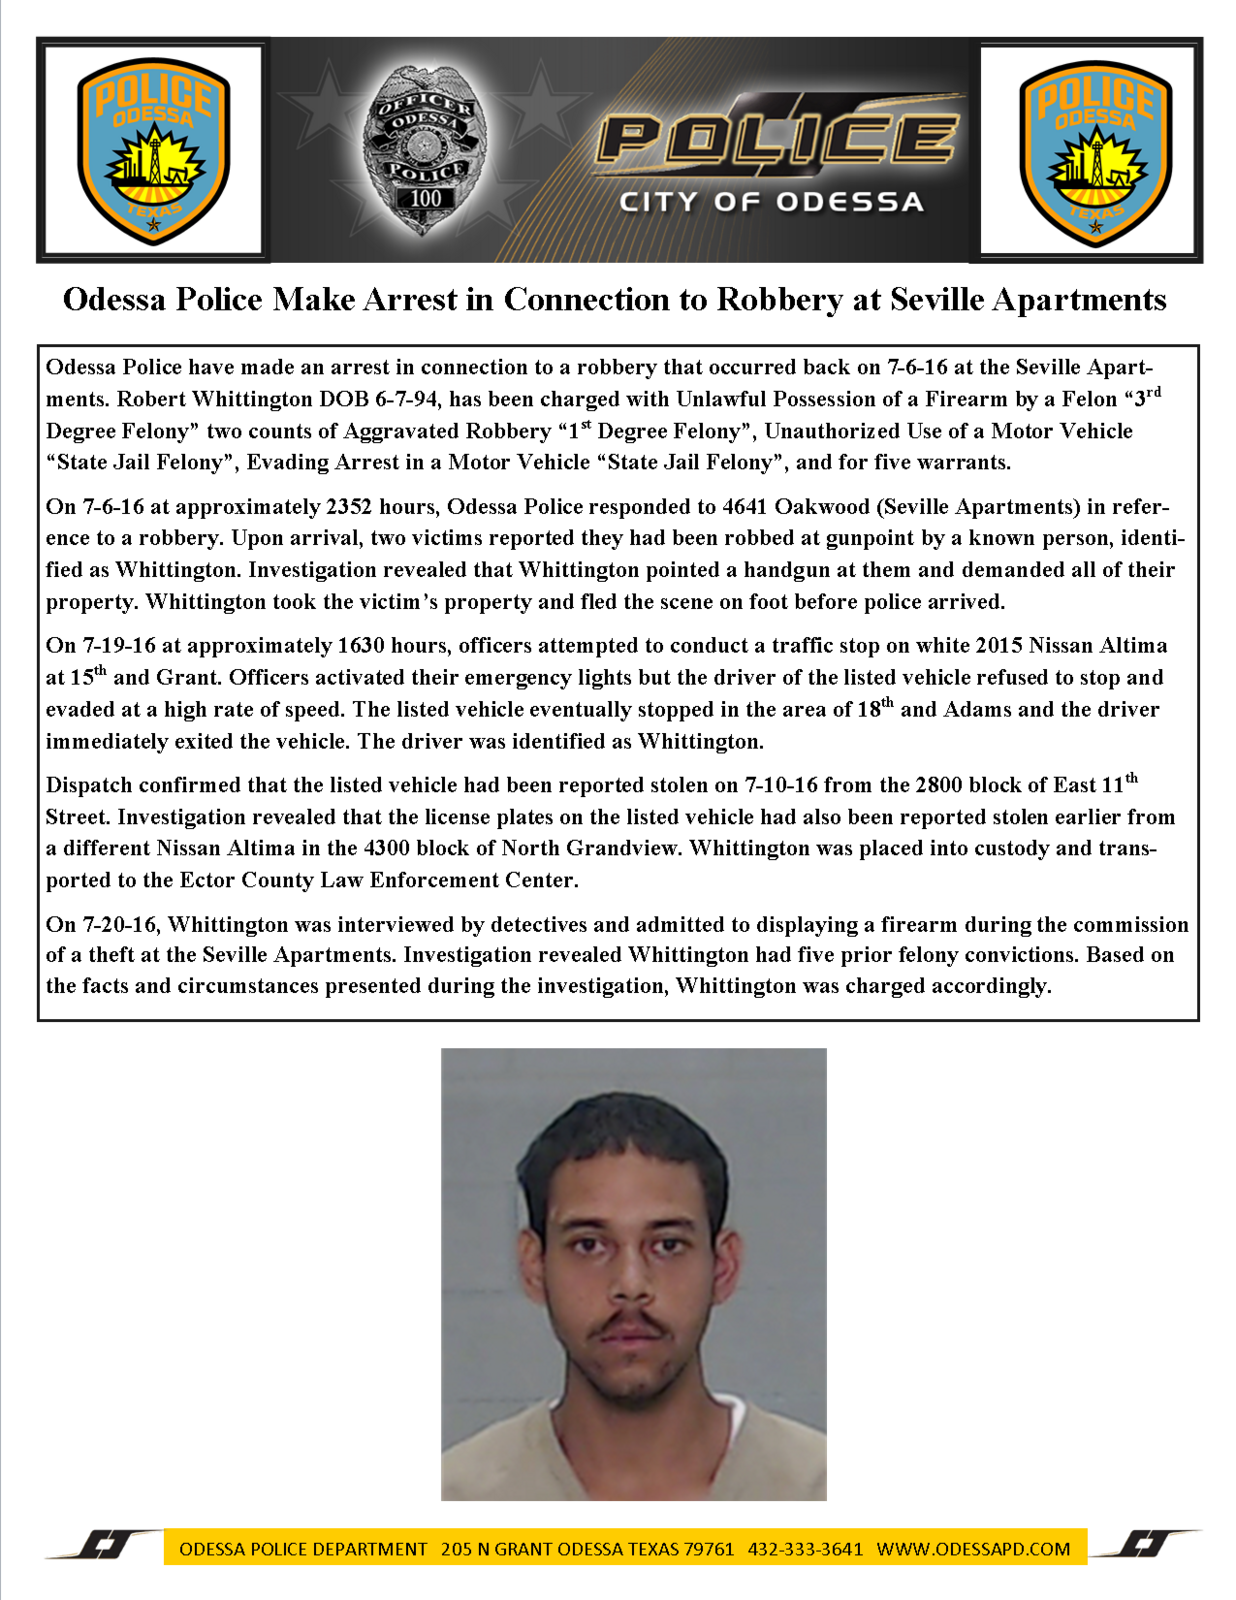 Odessa Police Make Arrest In Connection To Robbery At Seville Apartments ( Odessa Police Department) | Nextdoor